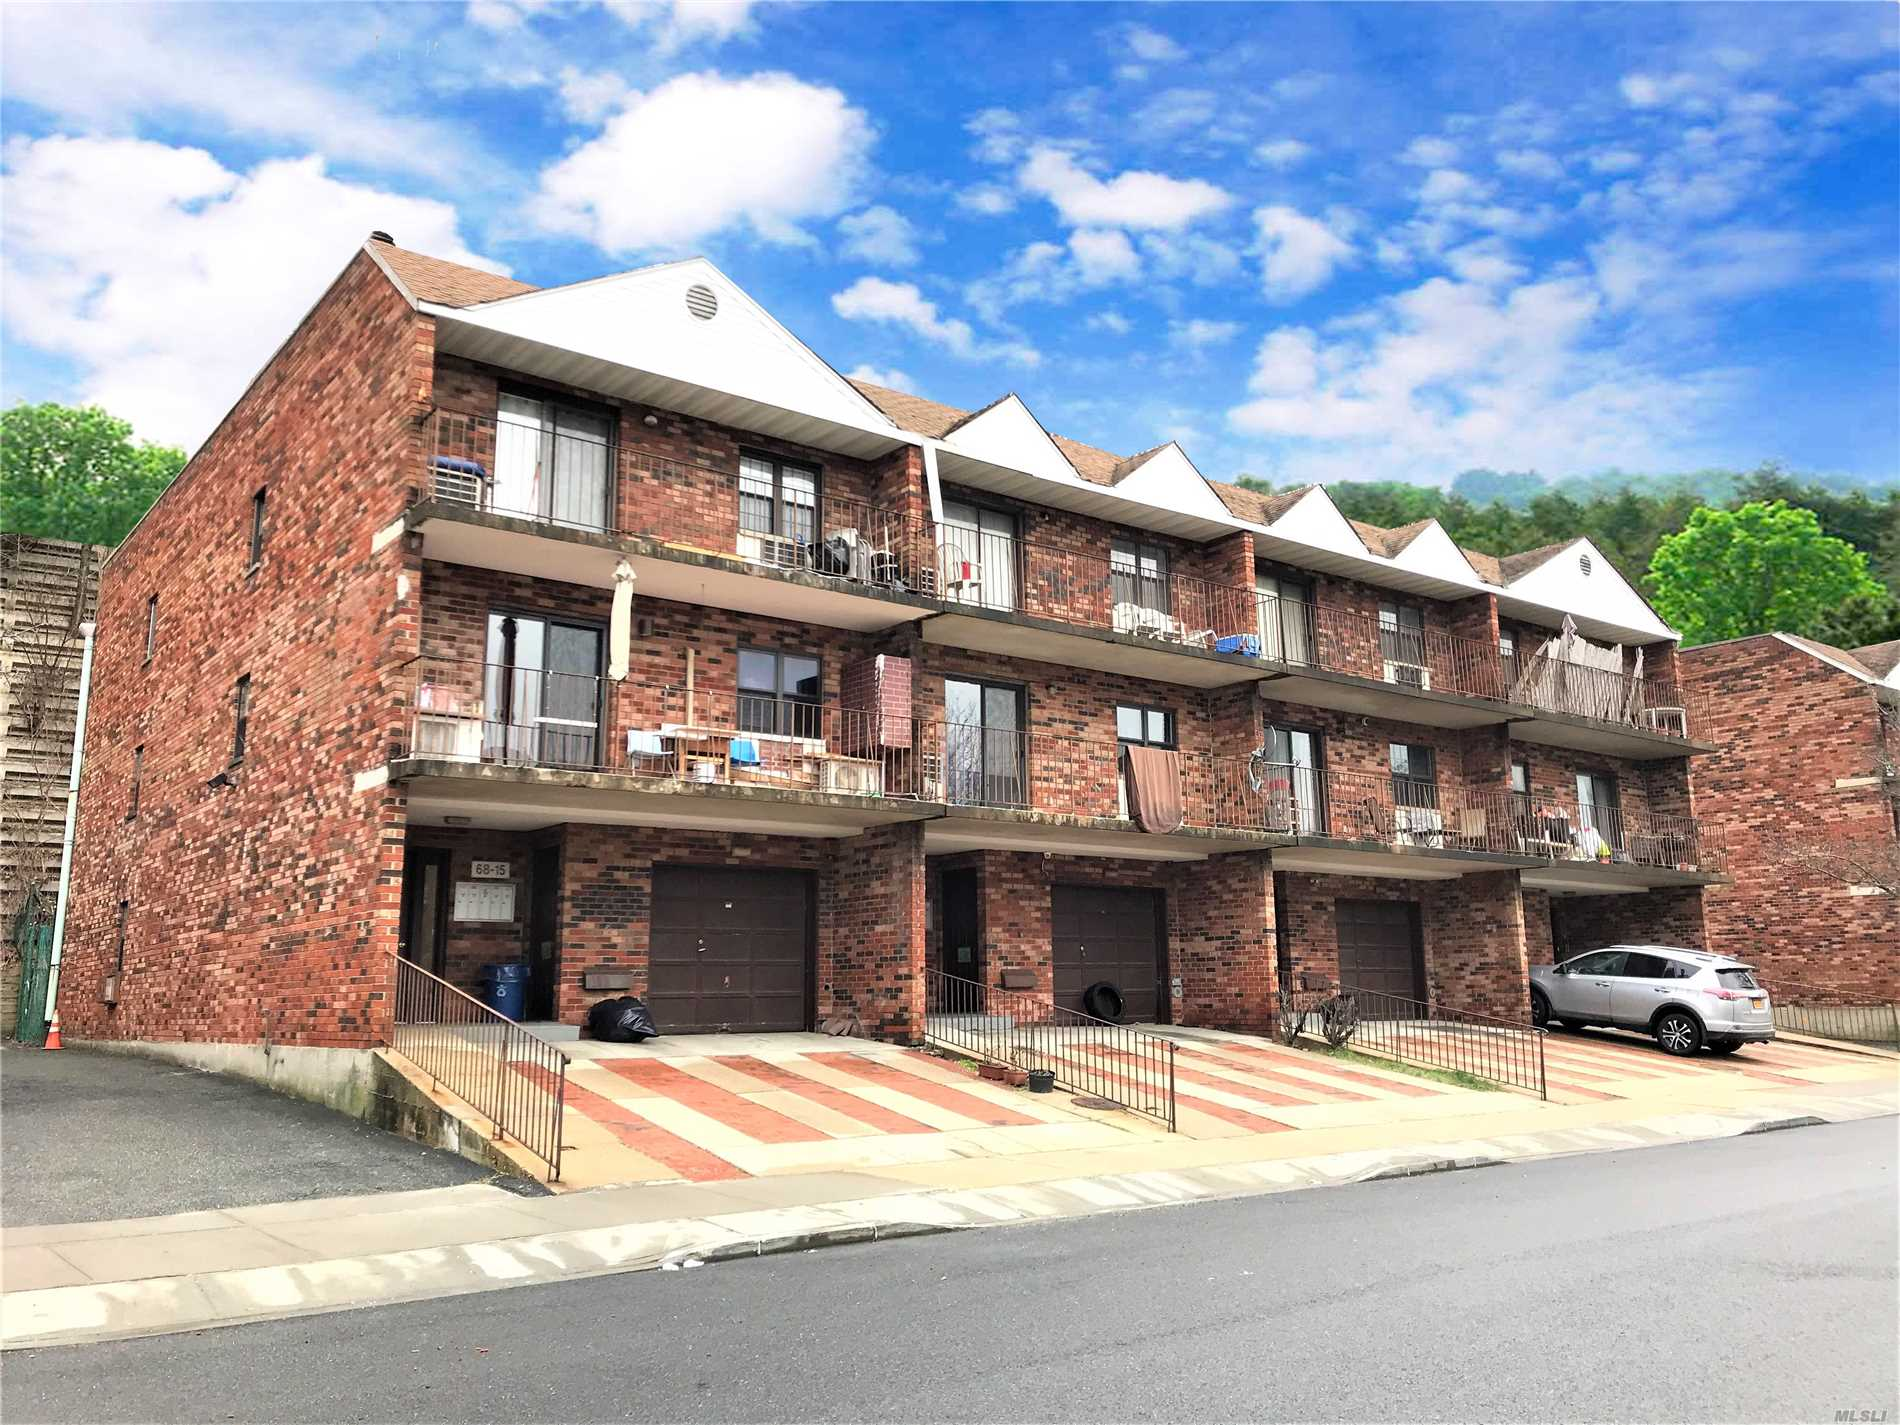 Spacious & Airy Brick 1st Floor Duplex Condo In A Quiet Neighborhood. 2 Large Bedrooms W/Walk In Closet, 1.5 Bath. Hardwood Floor, Washer & Dryer In The Unit. Easy Access To Major Highways, Next To Ally Pond Park. Close To Supermarket, Shopping & Restaurant. Bus Q30, Express Bus Qm5, Qm8, Qm35 To Manhattan! Great Schools. Must See!